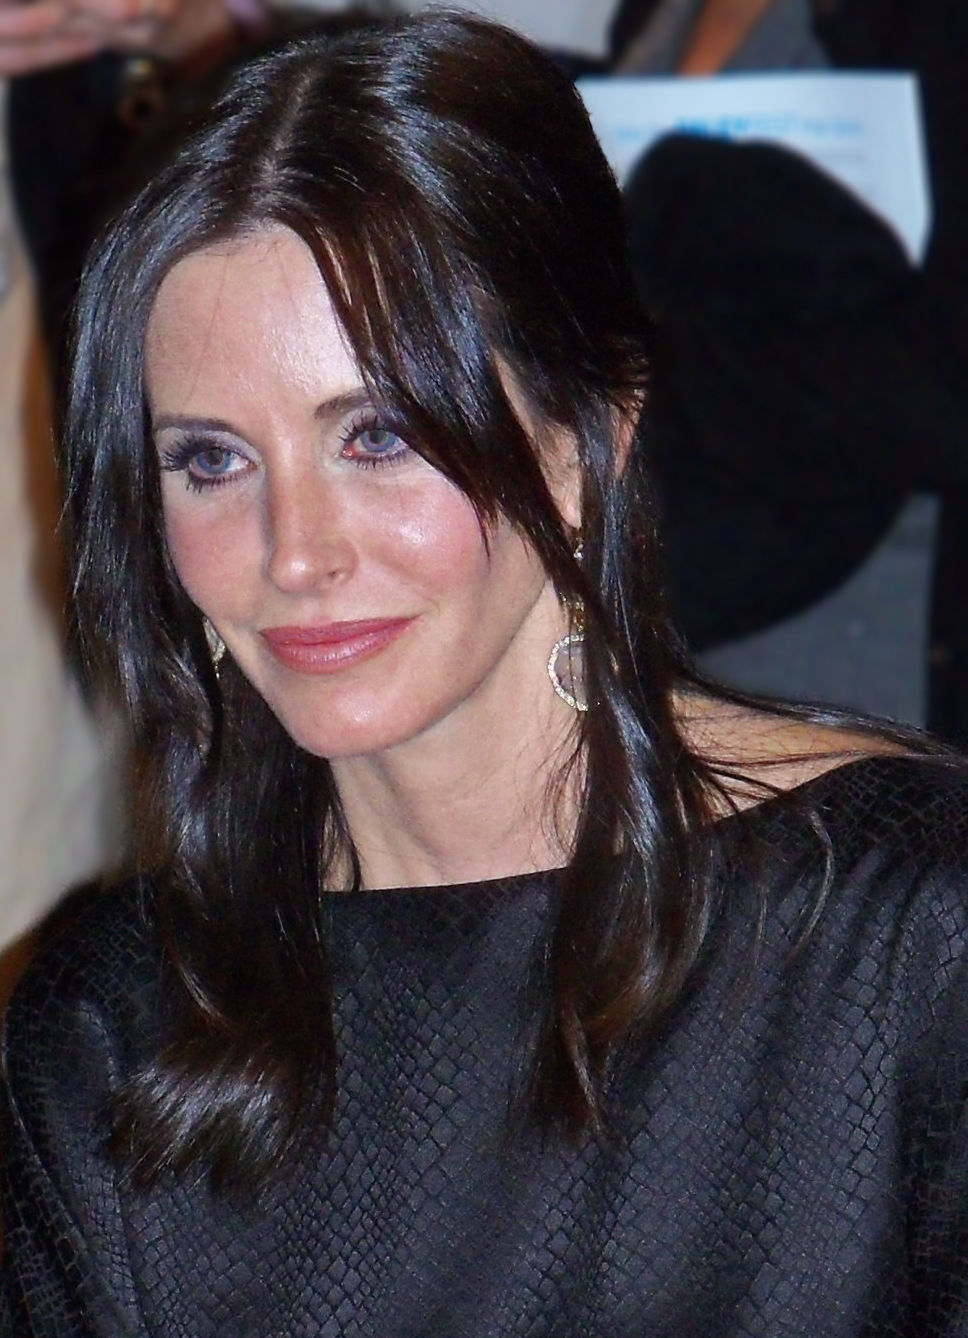 Photo of Courteney Cox: Television and film actress from the United States